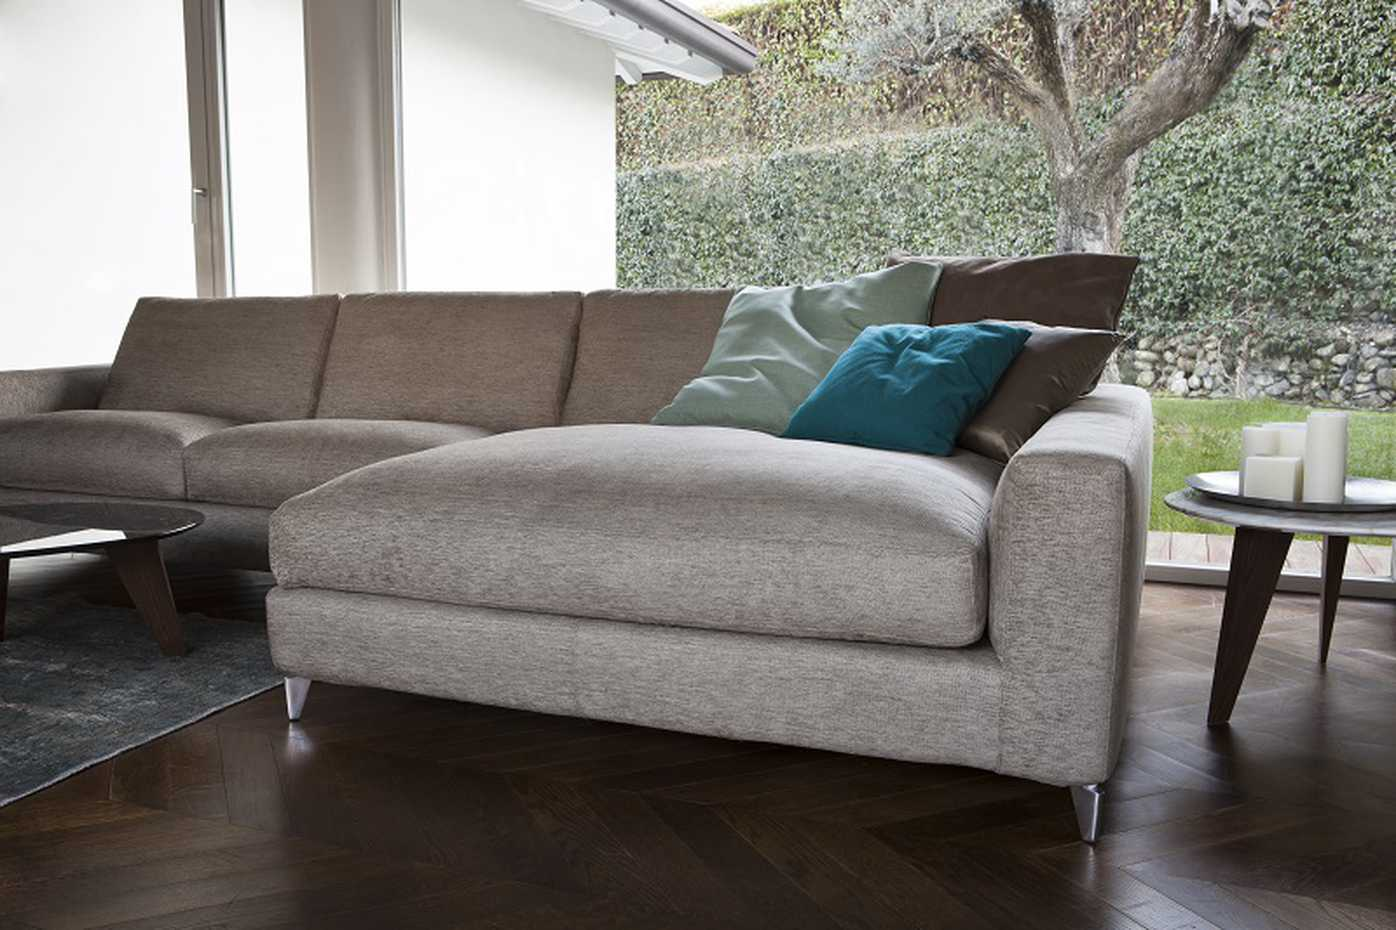 Zone Comfort by Vibieffe product image 5